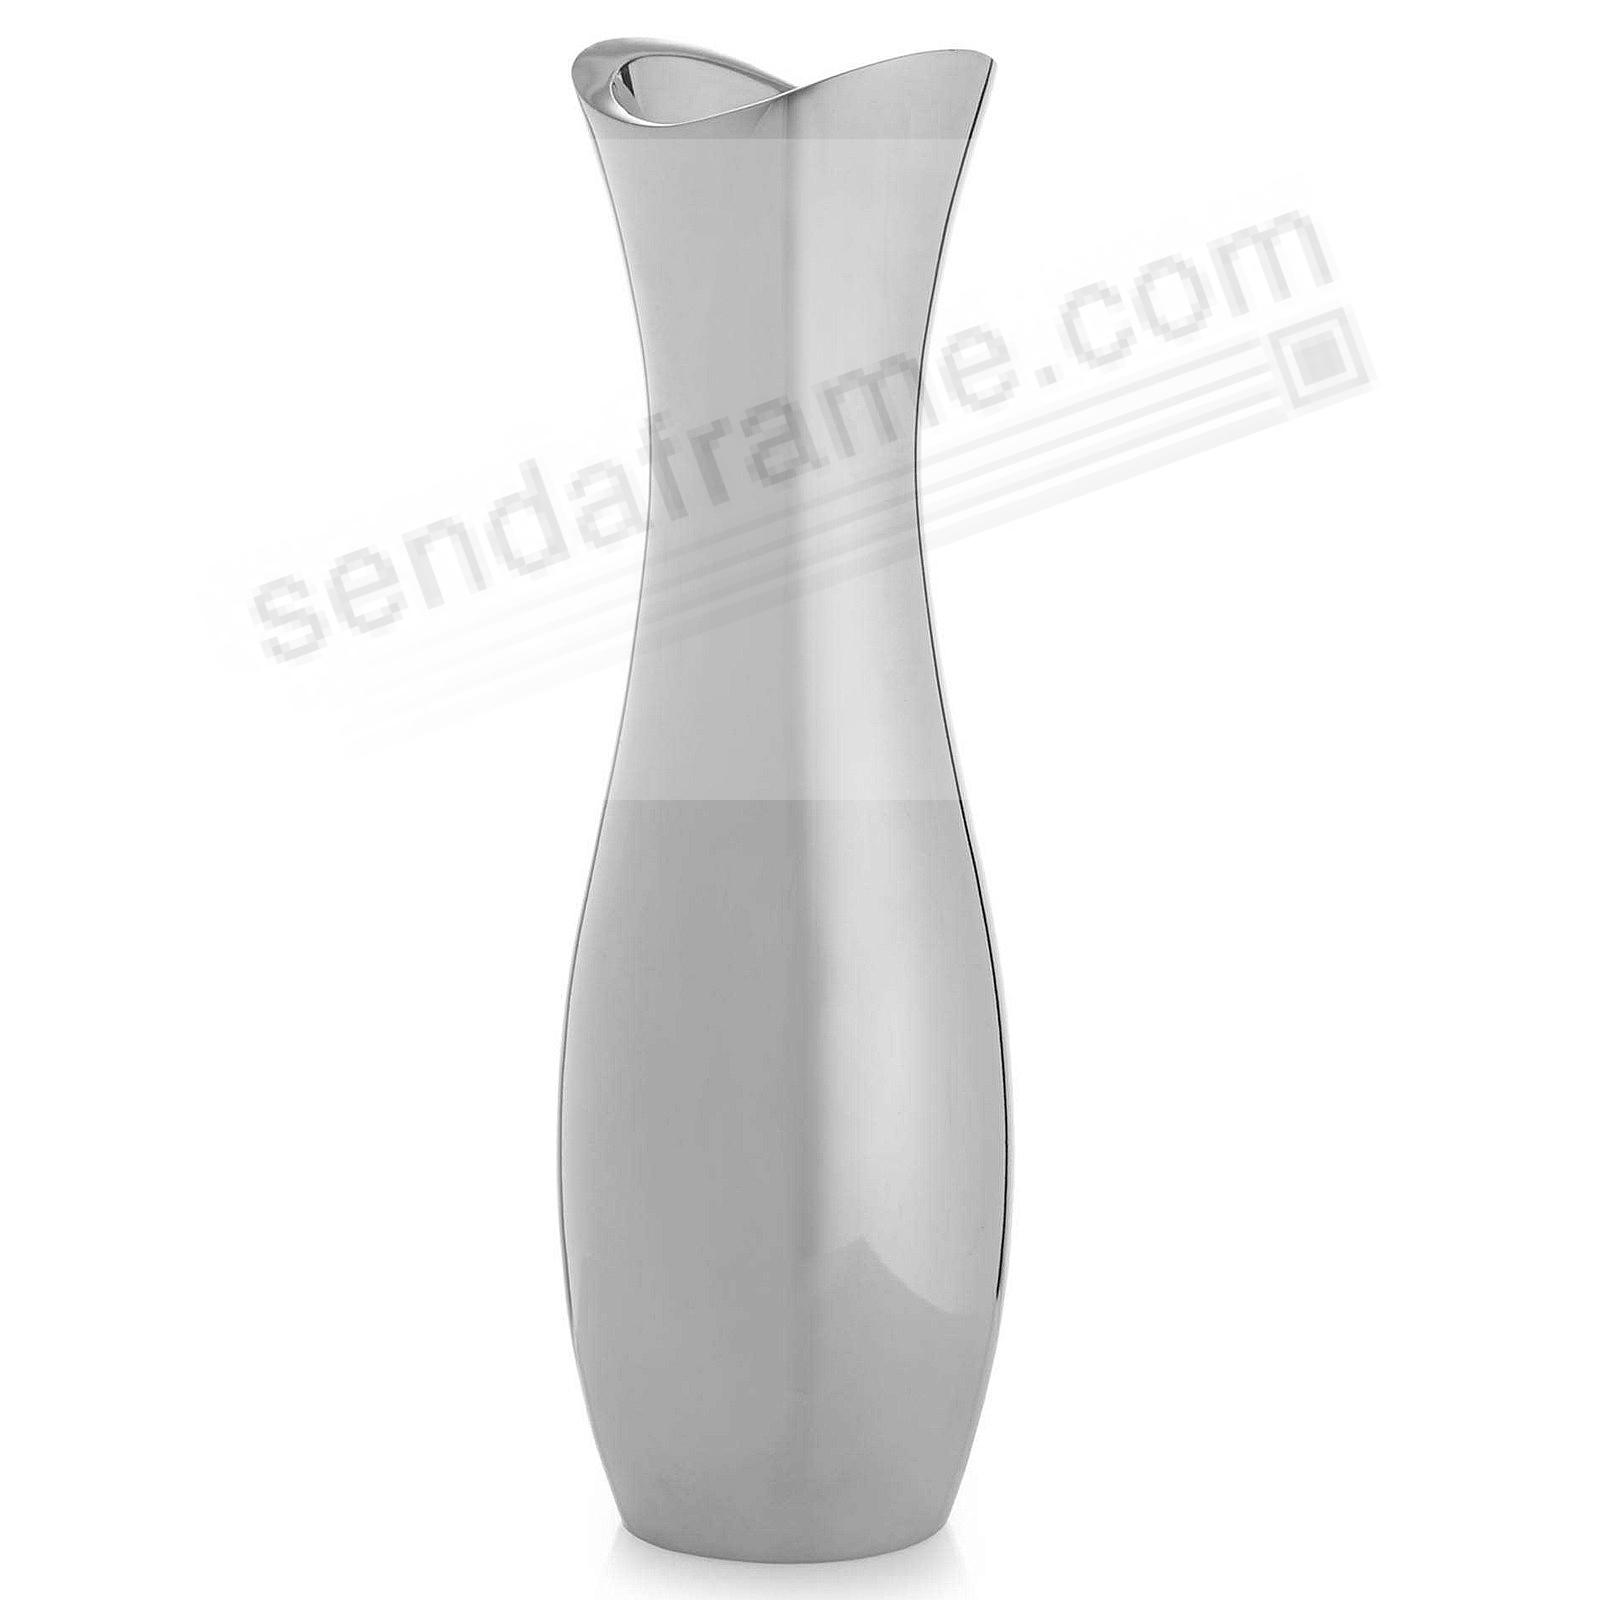 The STRYKER 11-in Vase by Nambe®